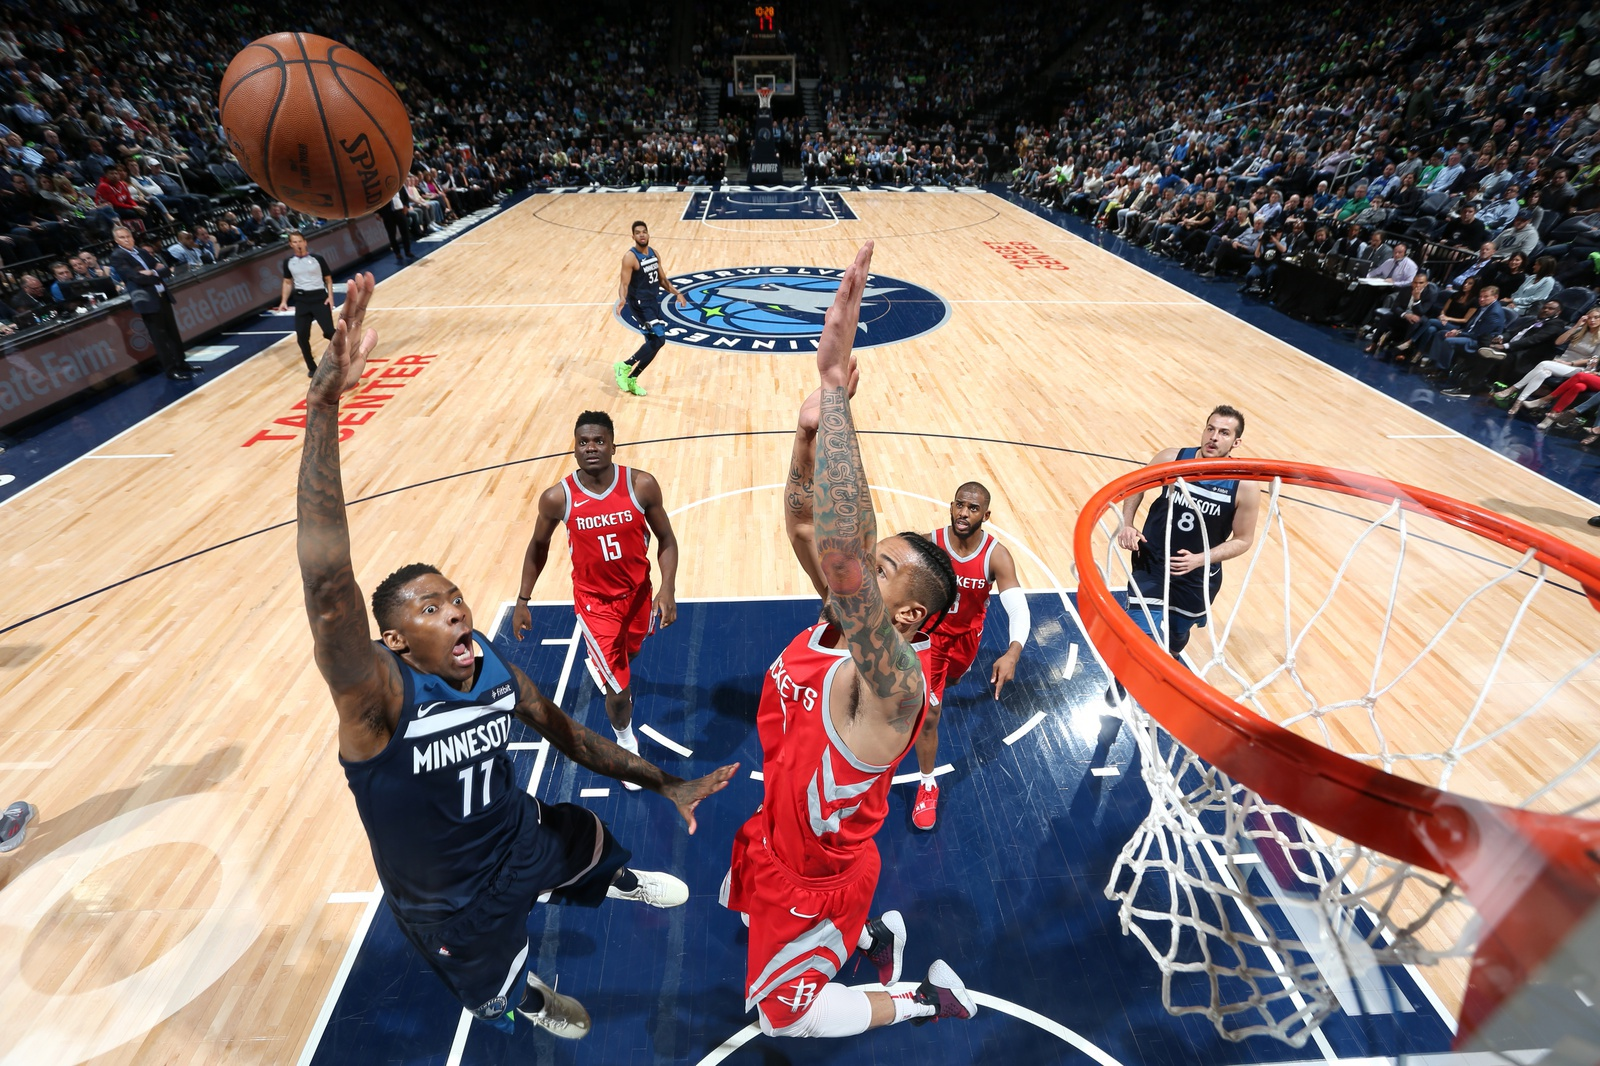 Jamal Crawford #11 of the Minnesota Timberwolves shoots the ball against the Houston Rockets in Game Three of Round One of the 2018 NBA Playoffs on April 21, 2018 at Target Center in Minneapolis, Minnesota.